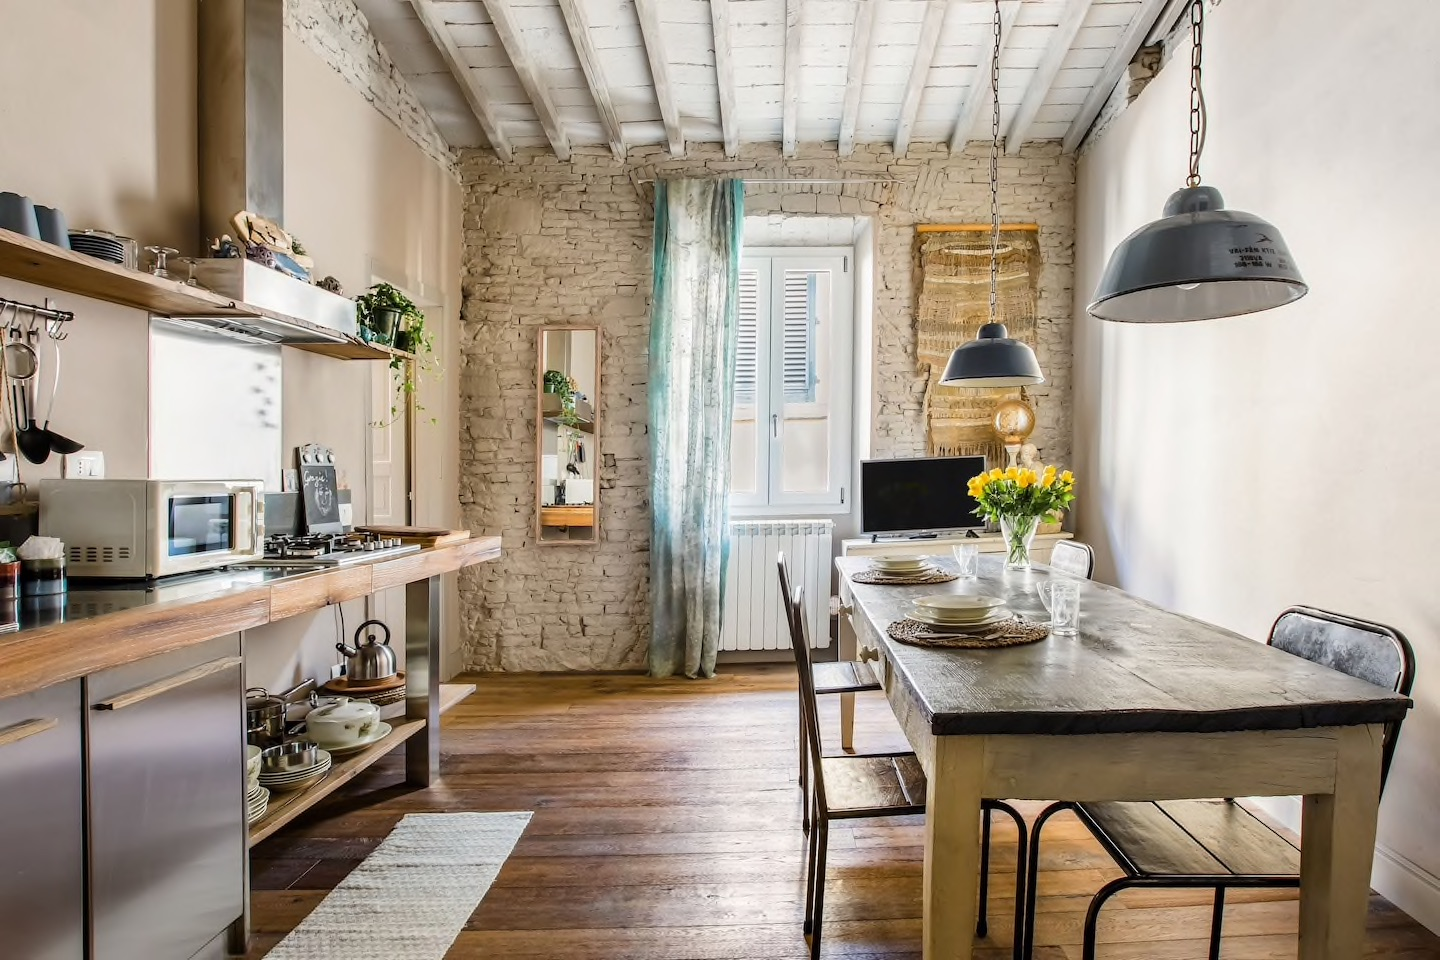 This rustic Santo Spirito apartment has a beautiful industrial and modern aesthetic!